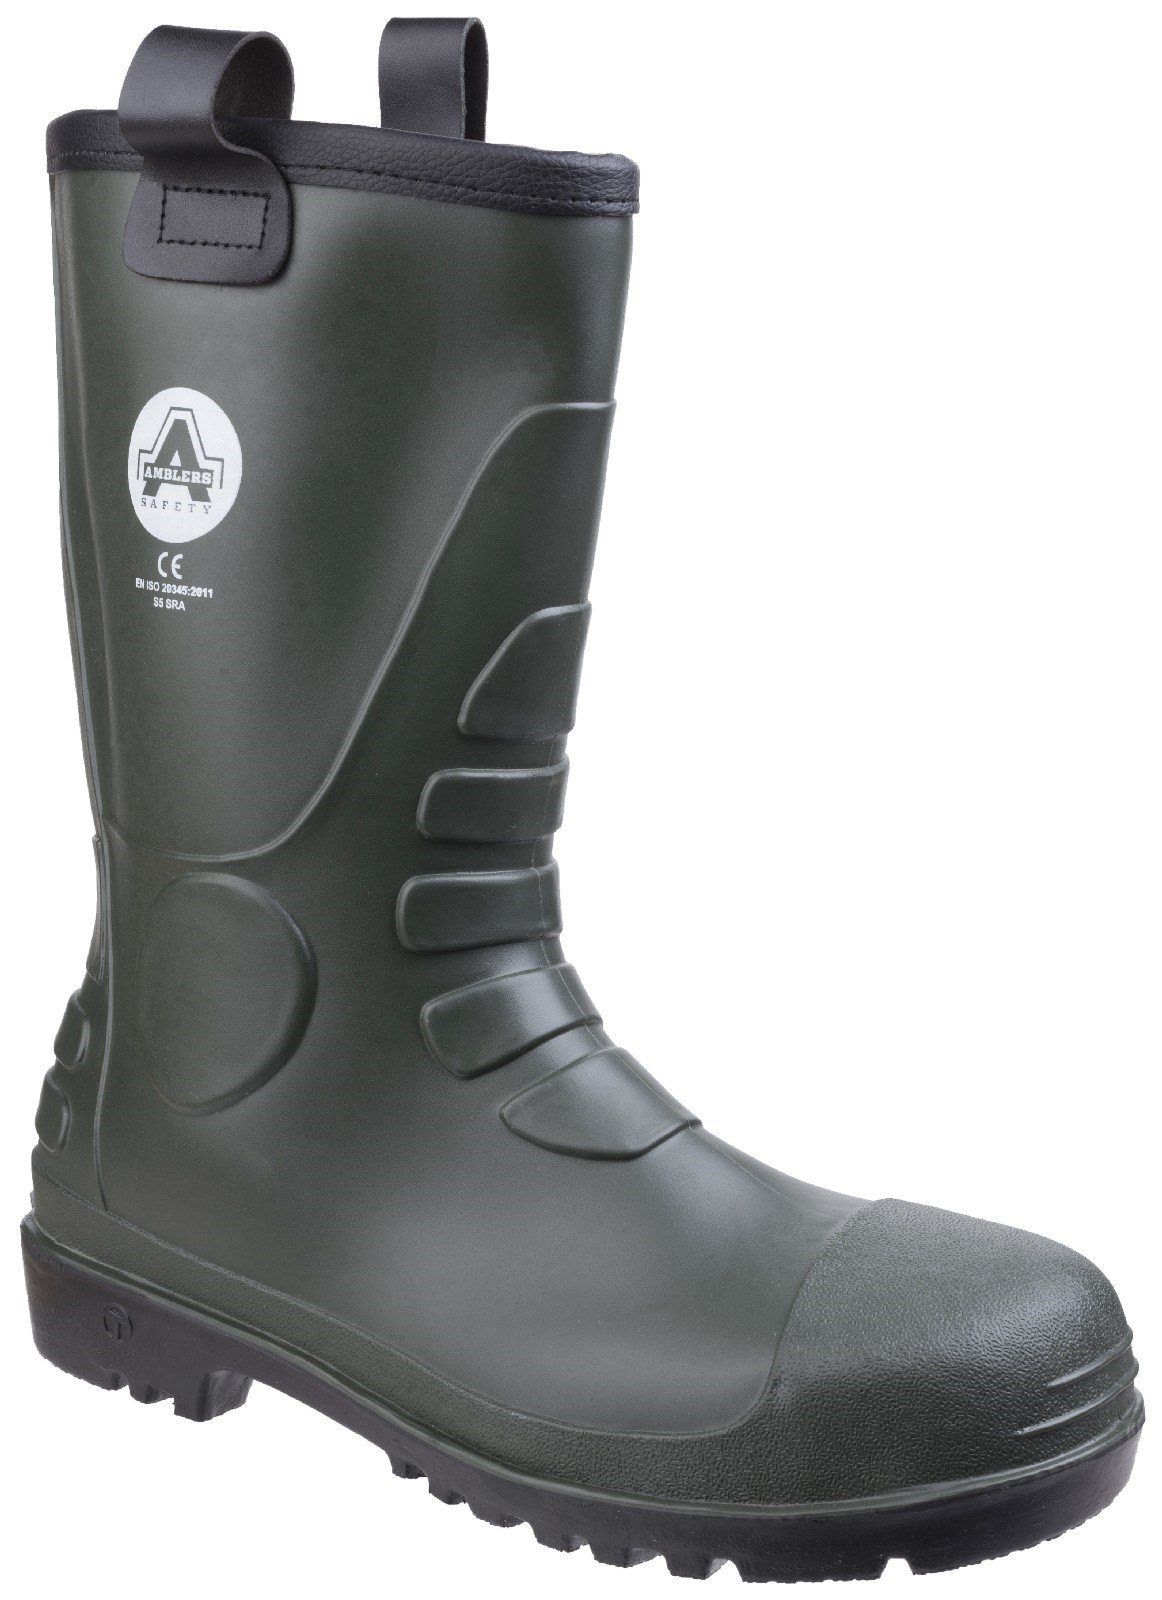 Amblers Unisex Safety PVC Rigger Boot Green 21154 - Green 12